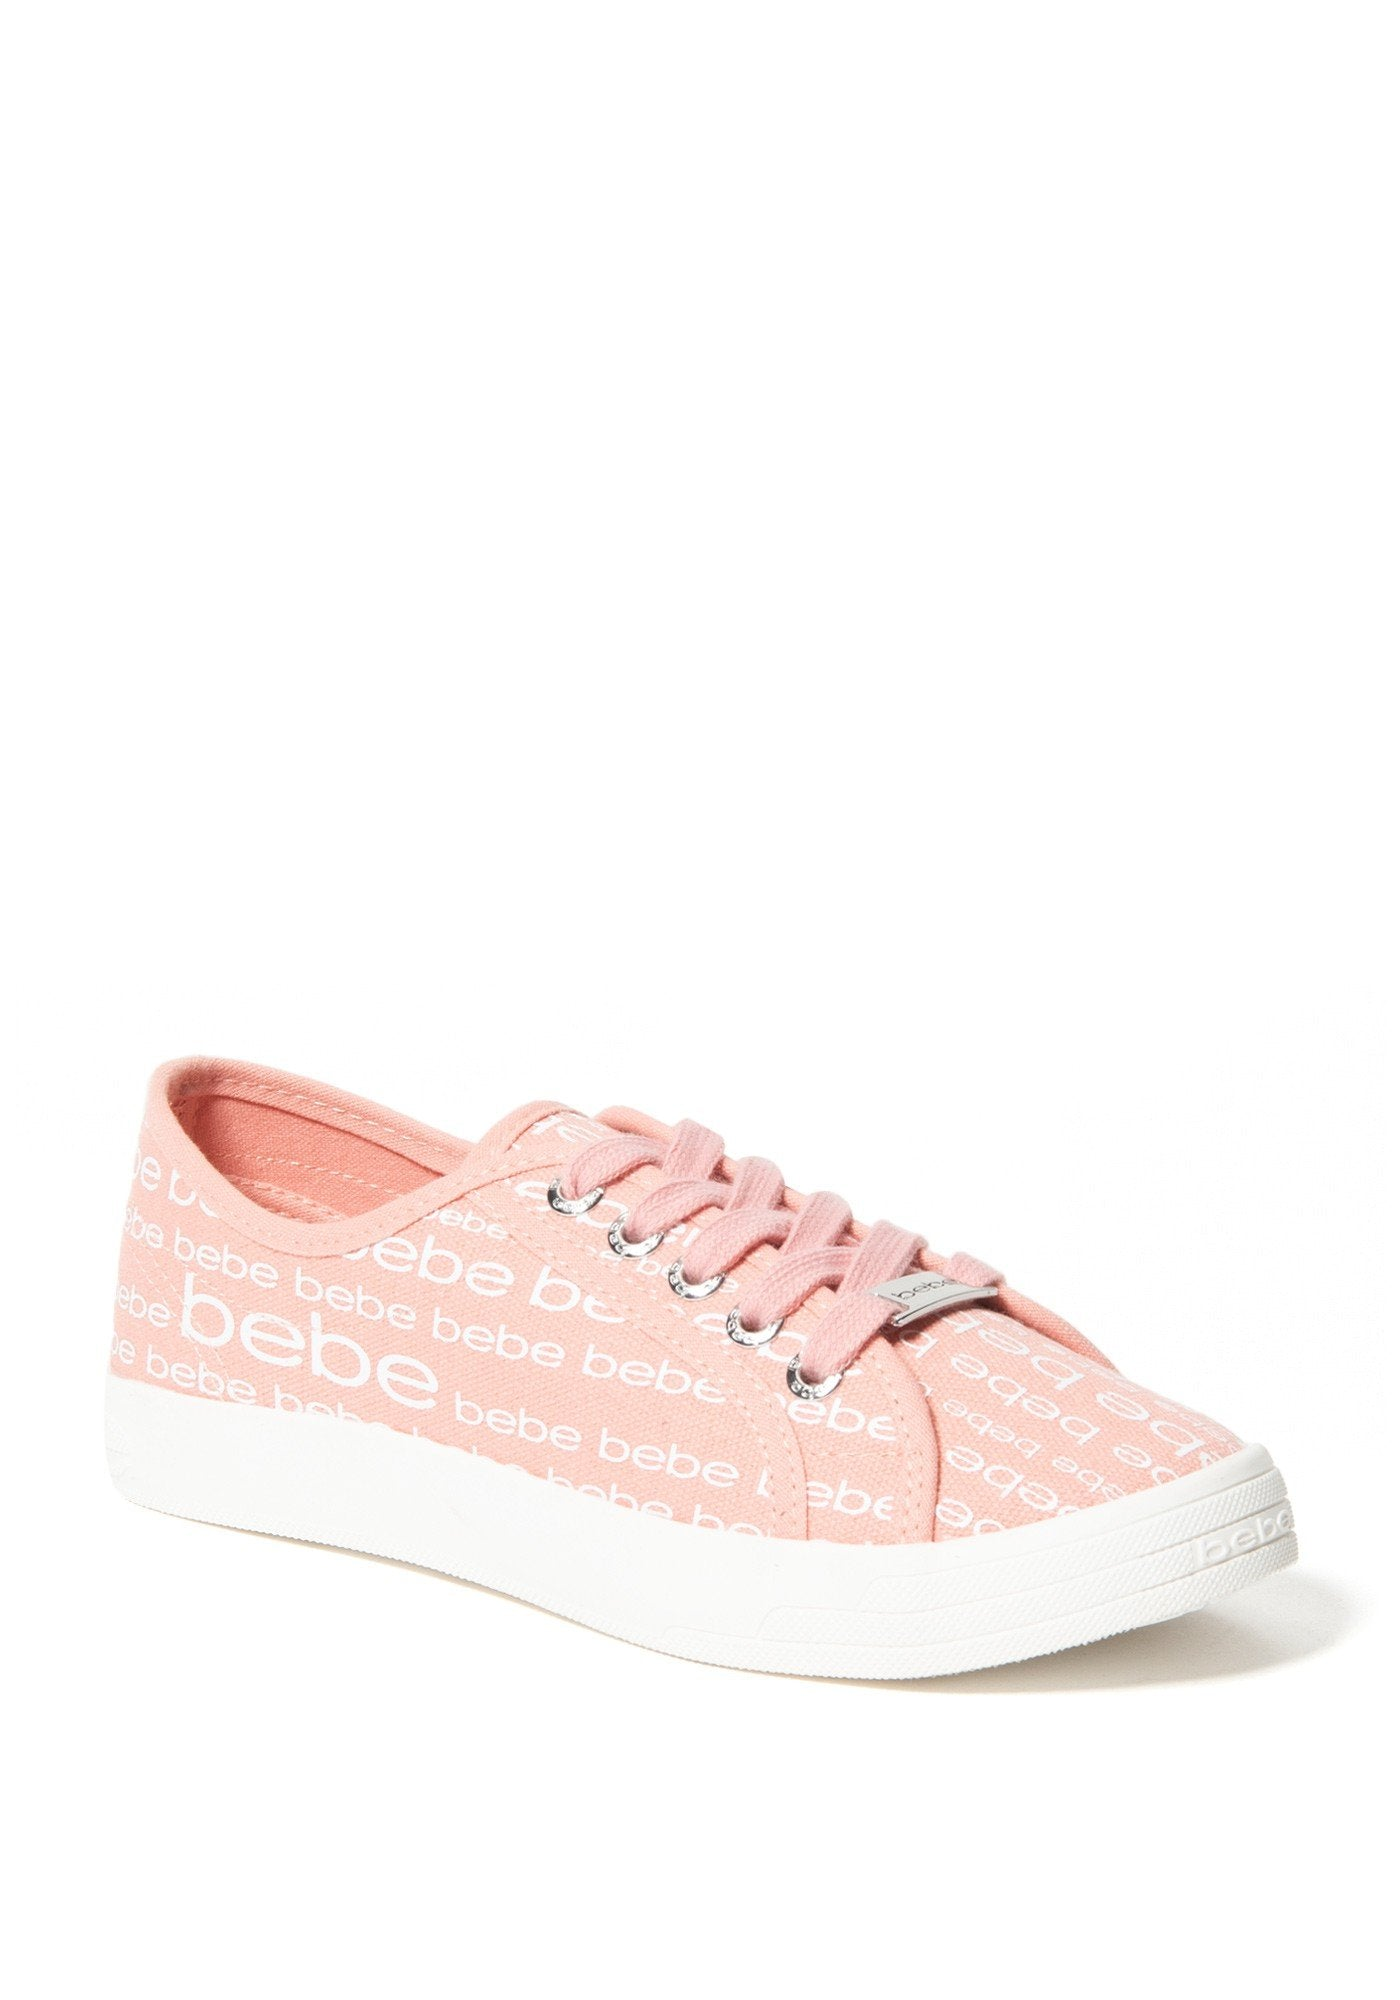 Bebe Women's Daylin Logo Sneakers, Size 6 in Pink Synthetic